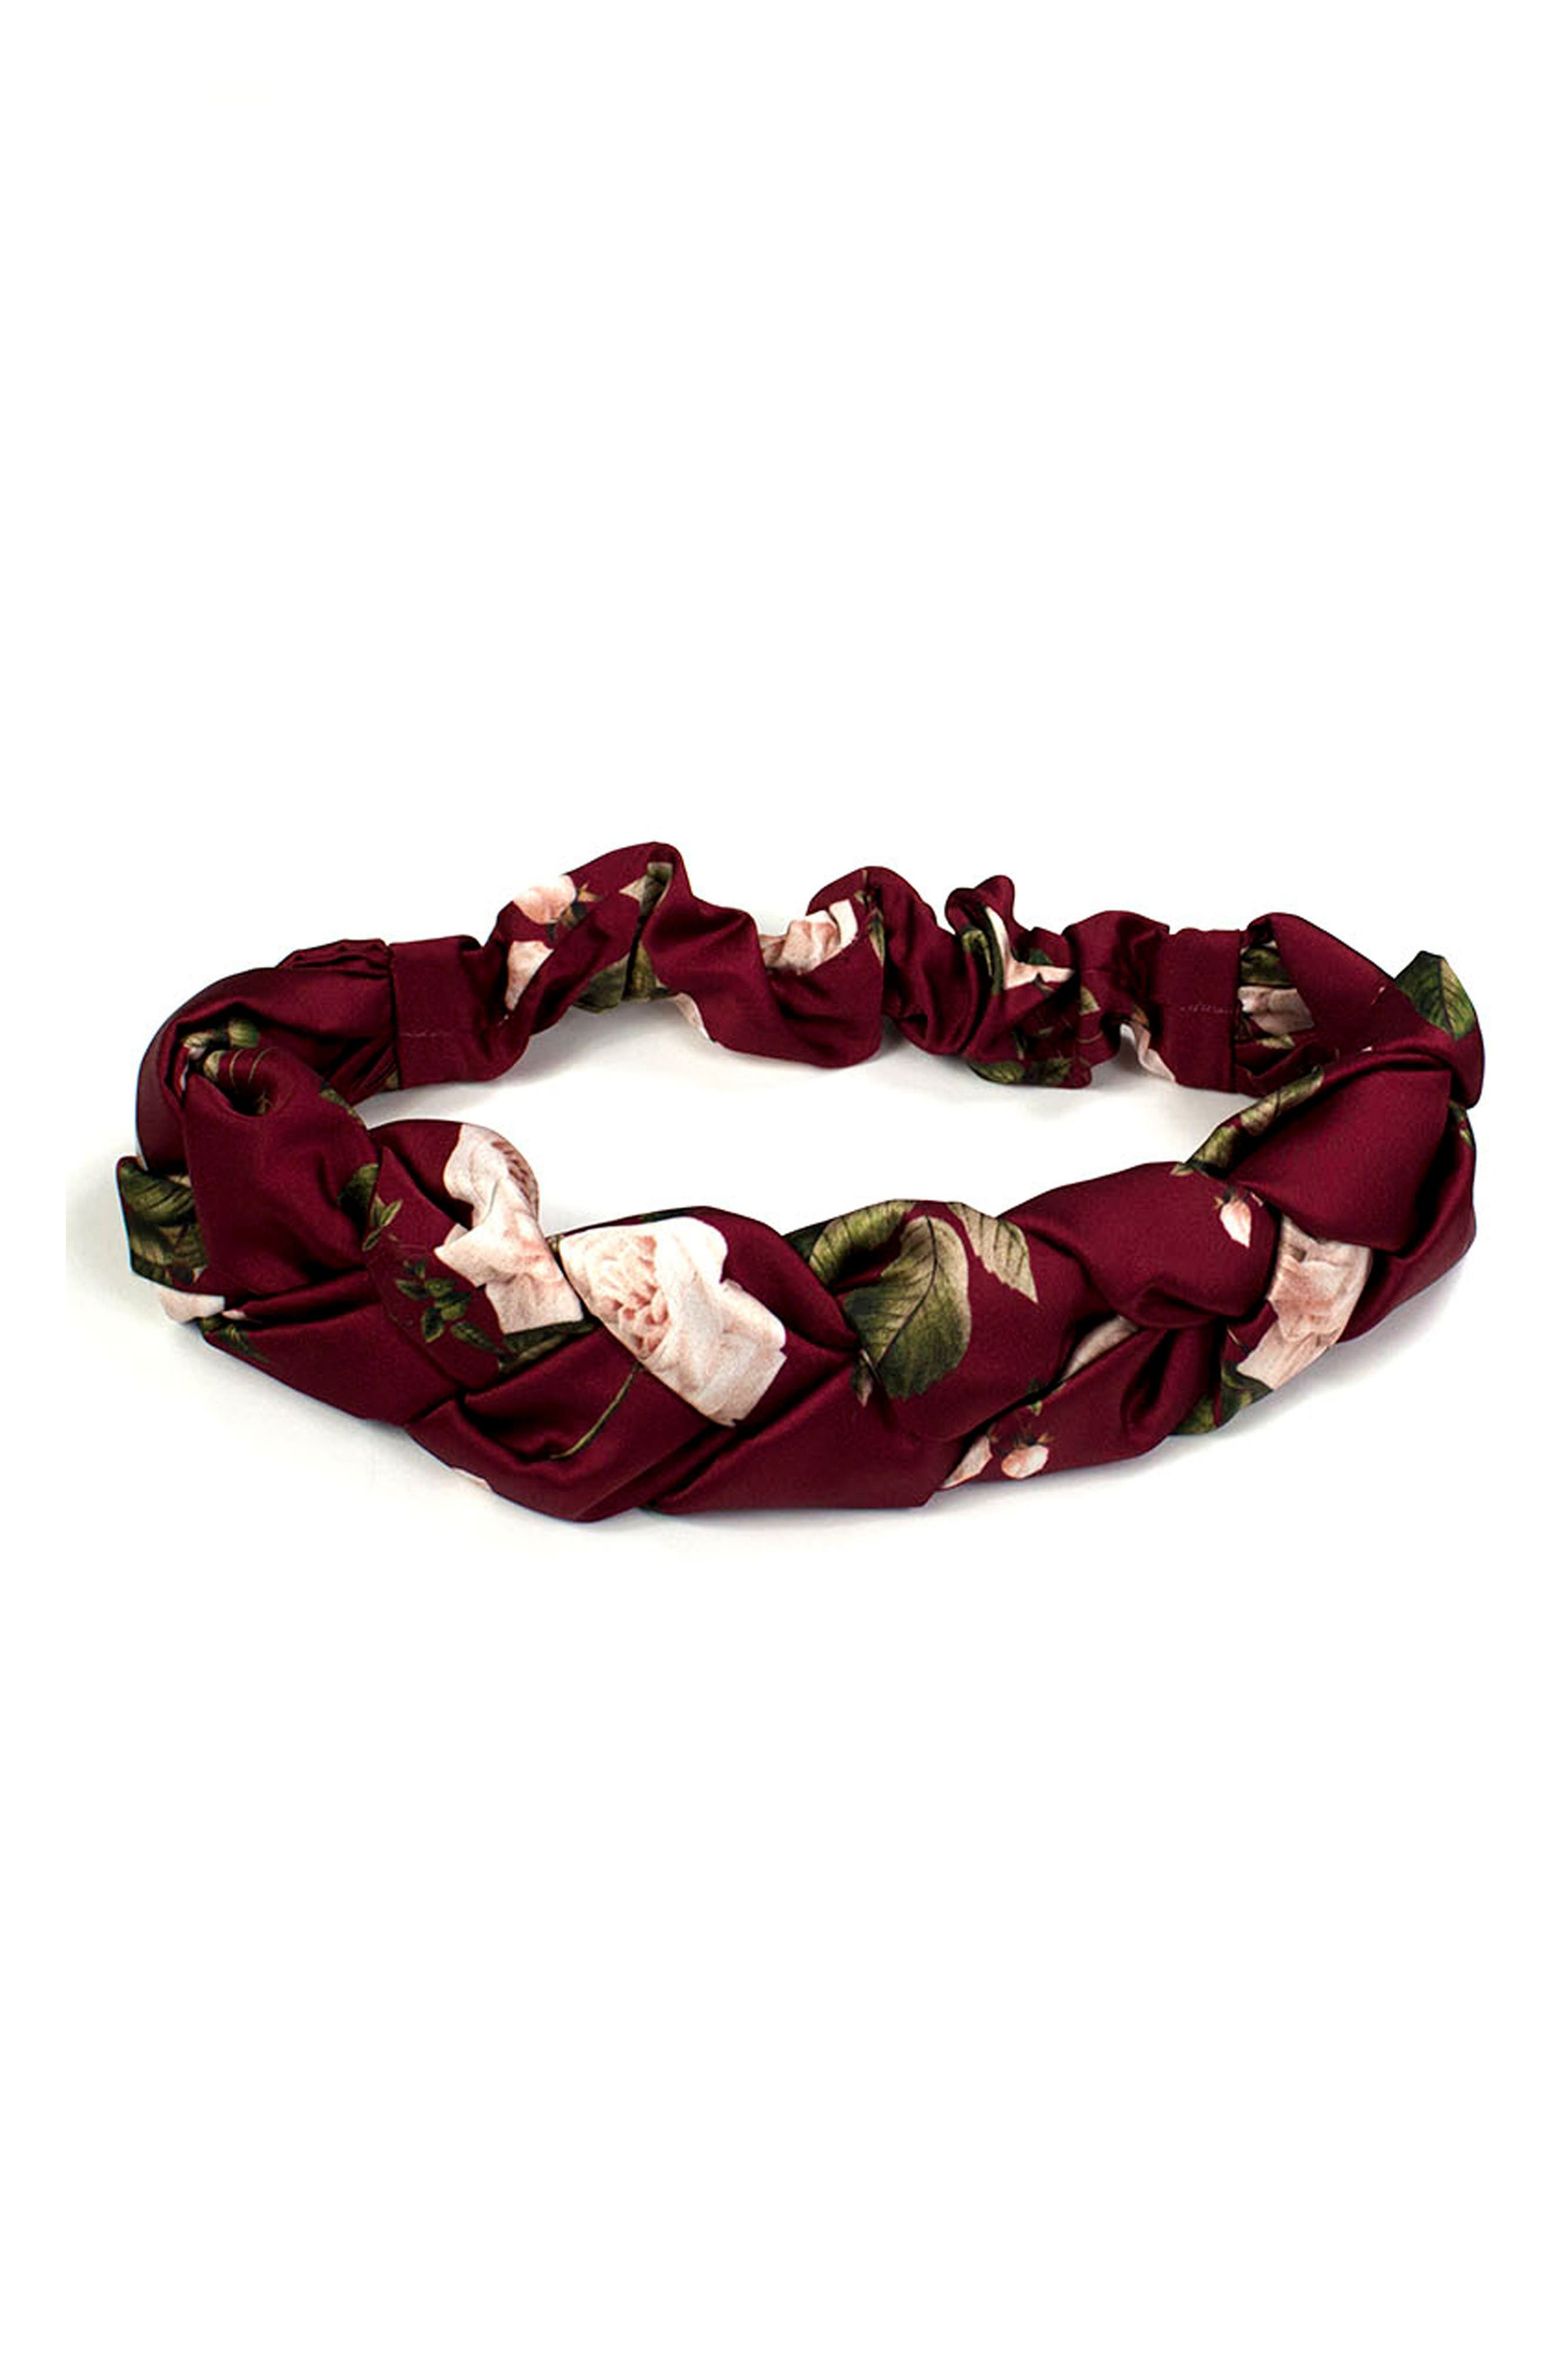 Main Image - New Friends Colony Winter Rose Braided Head Wrap